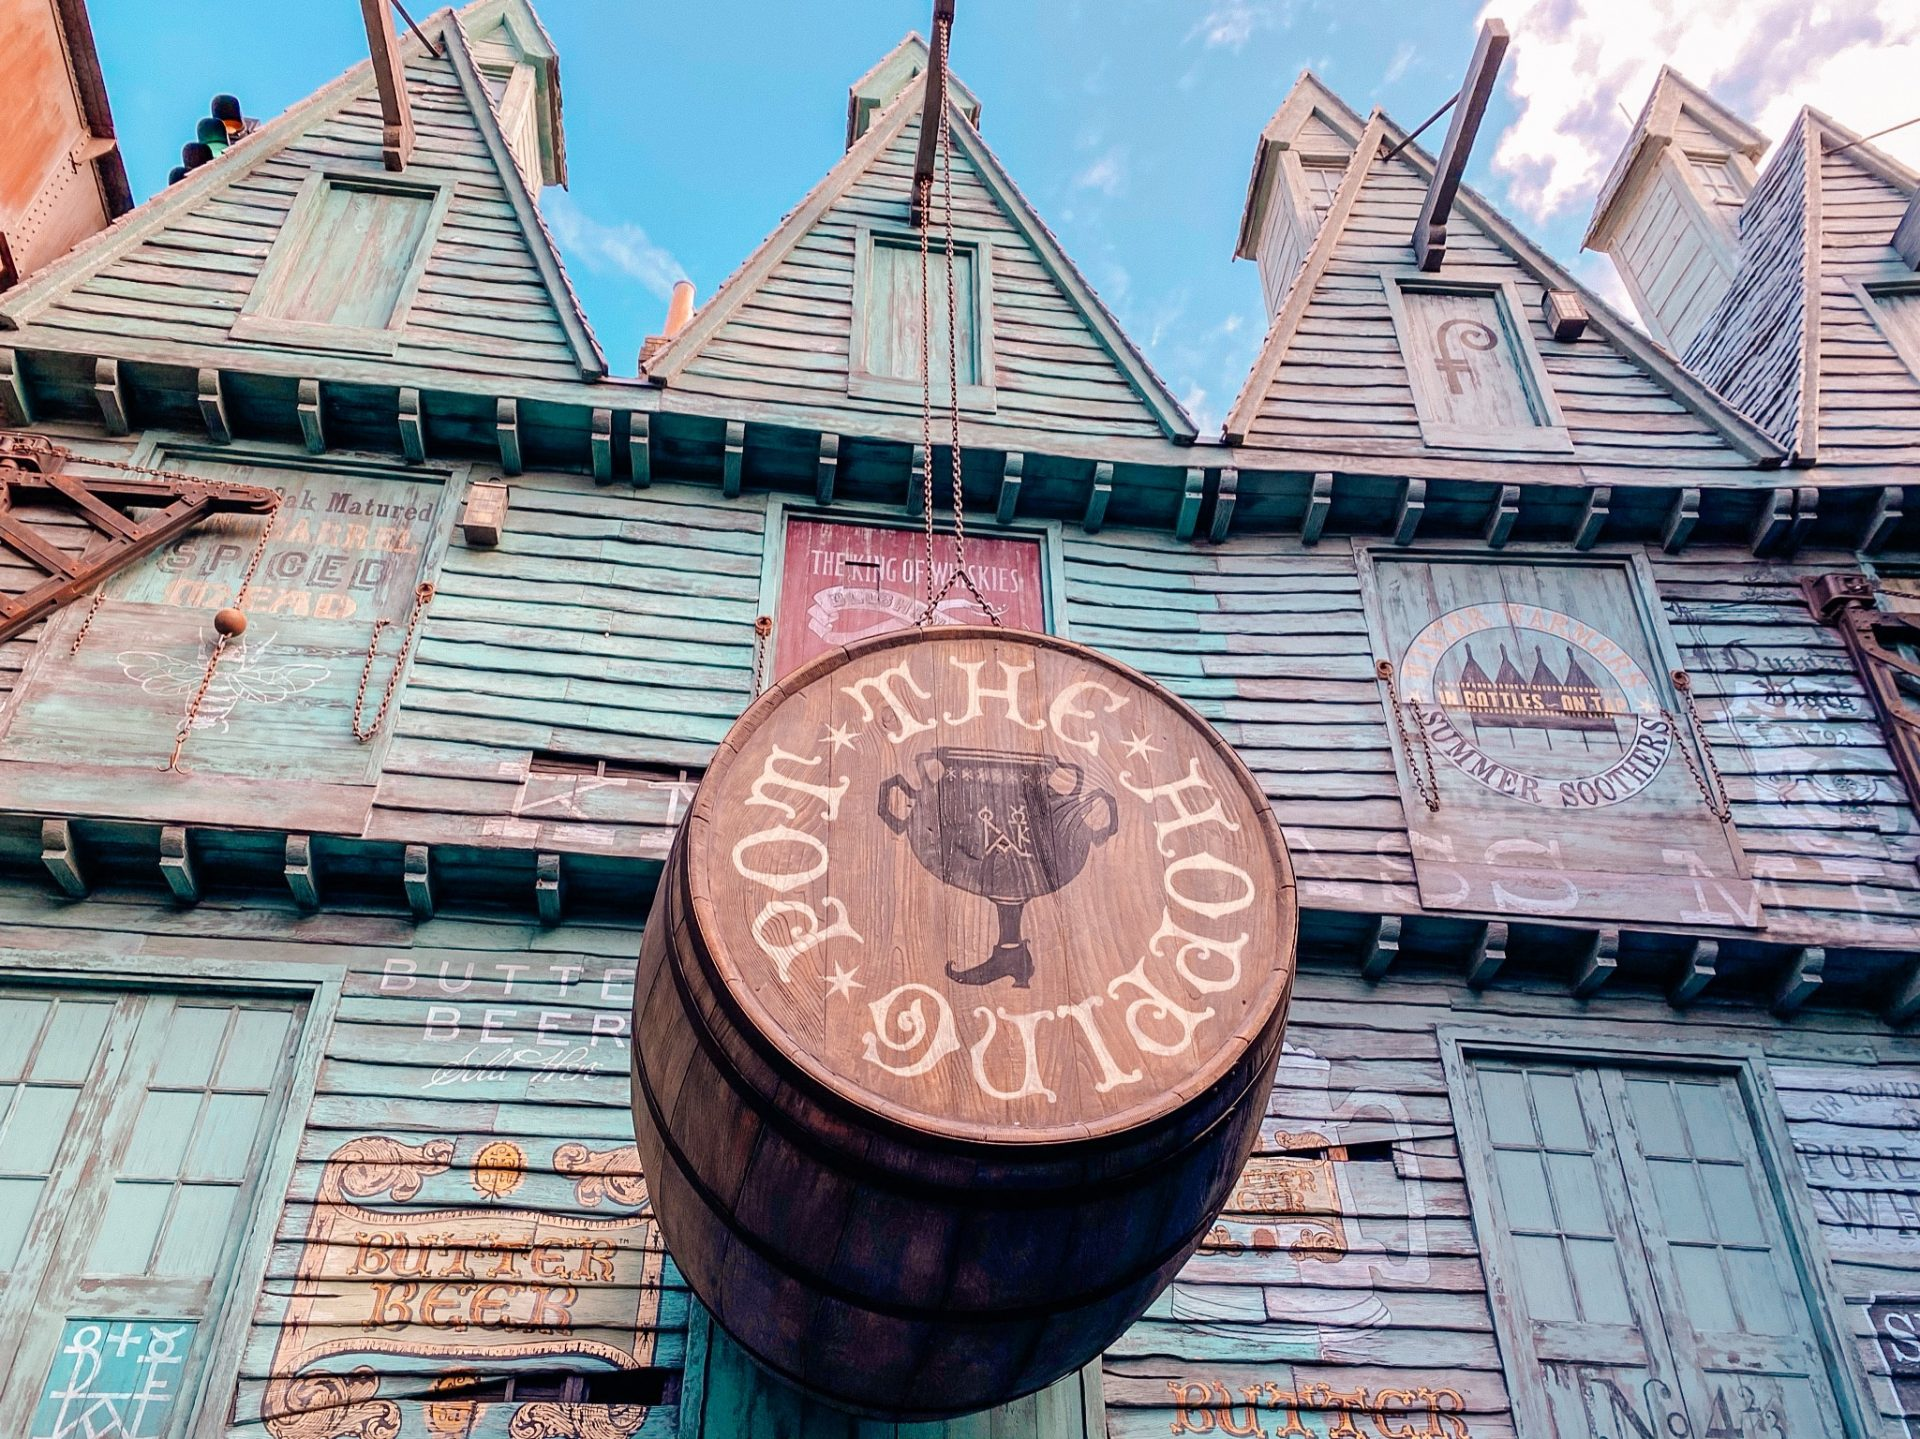 one spot where you can purchase butter beer at the wizarding world of harry potter at universal studios orlando florida